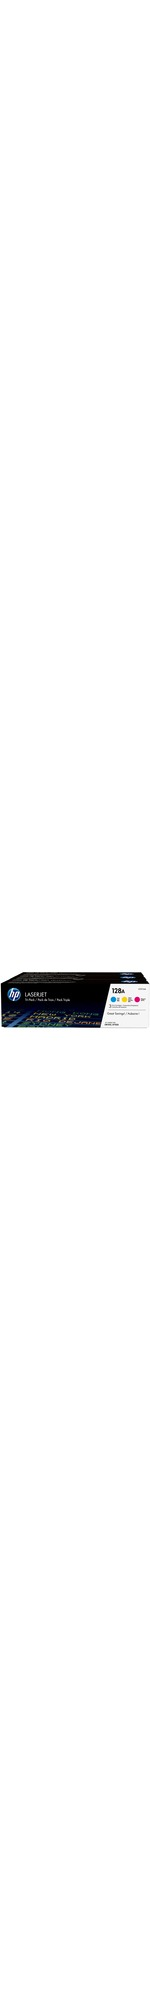 HP 128A Toner Cartridge - Cyan, Magenta, Yellow